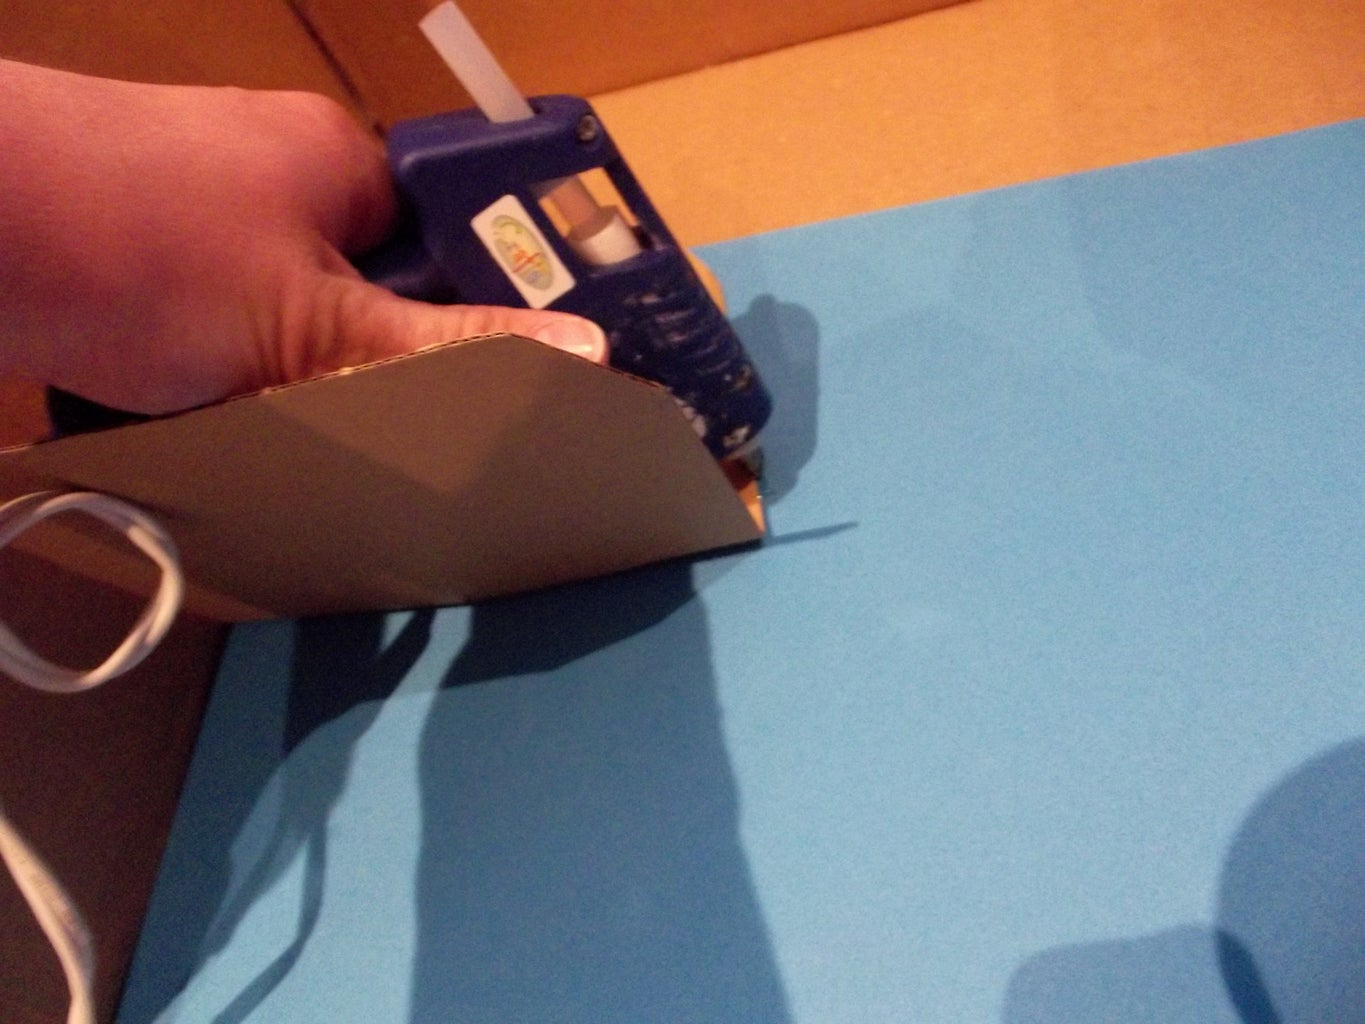 Gluing the Constructions Paper: